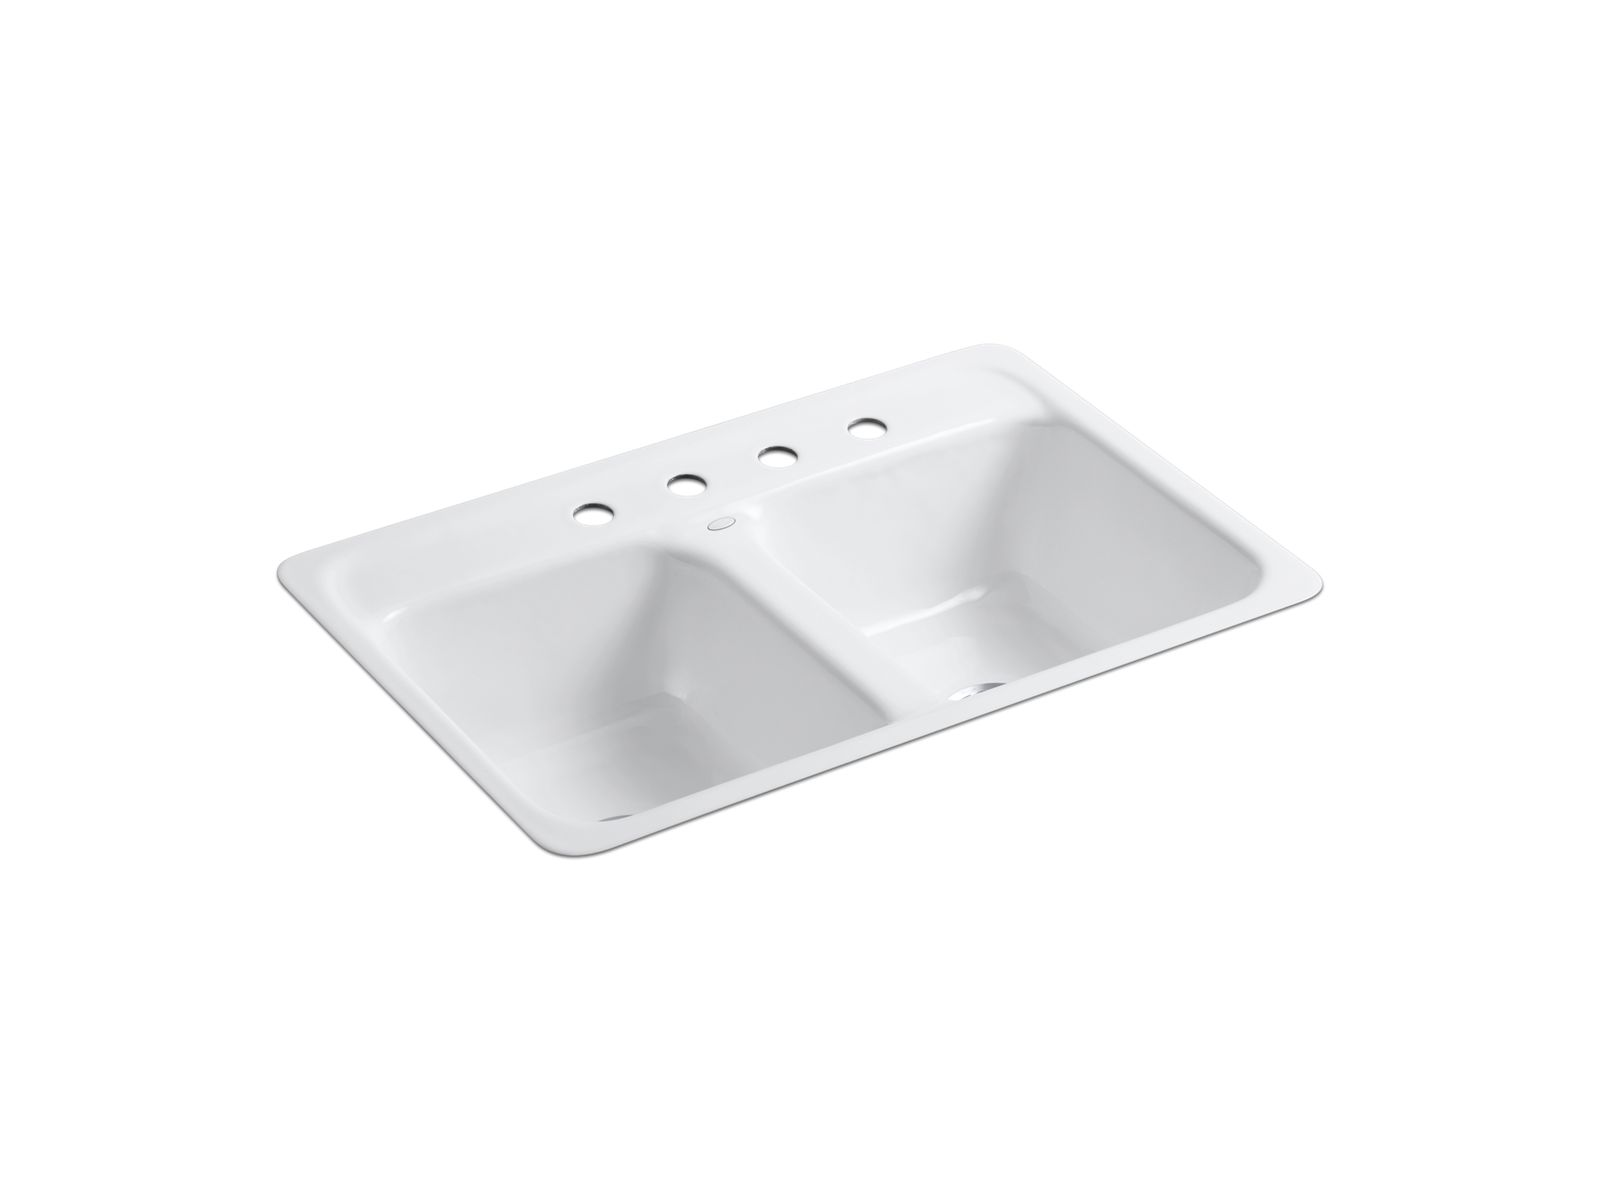 delafield top mount kitchen sink with four faucet holes   k 5950 4   kohler delafield top mount kitchen sink with four faucet holes   k 5950 4      rh   us kohler com